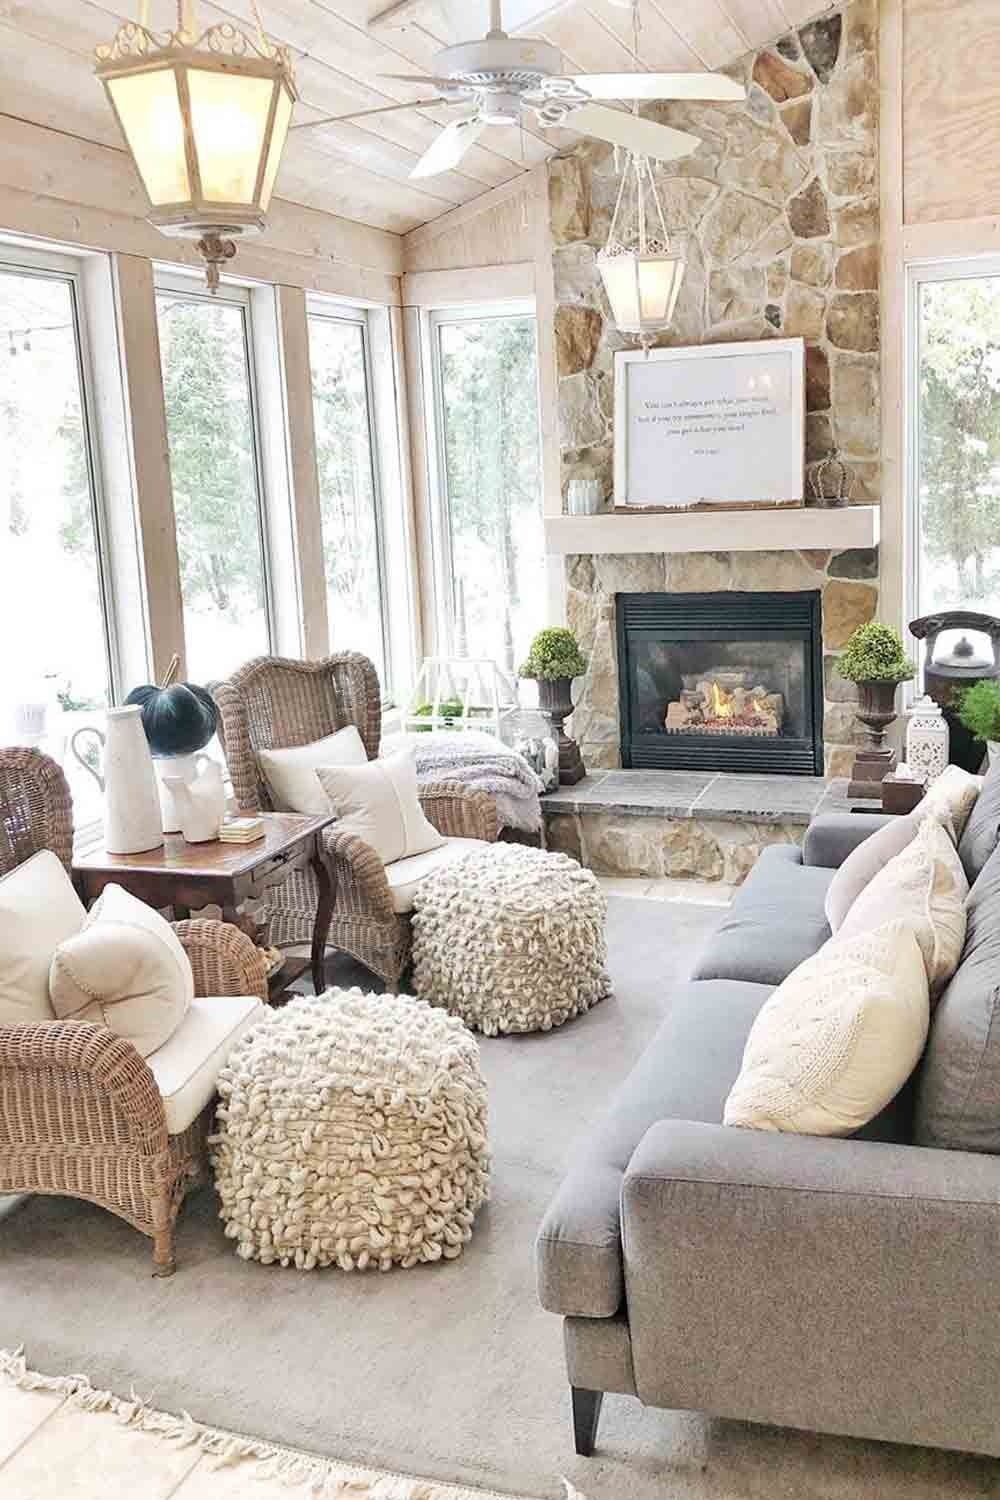 11 Sunroom Ideas: The Best Combo Of Indoor And Outdoor In One in